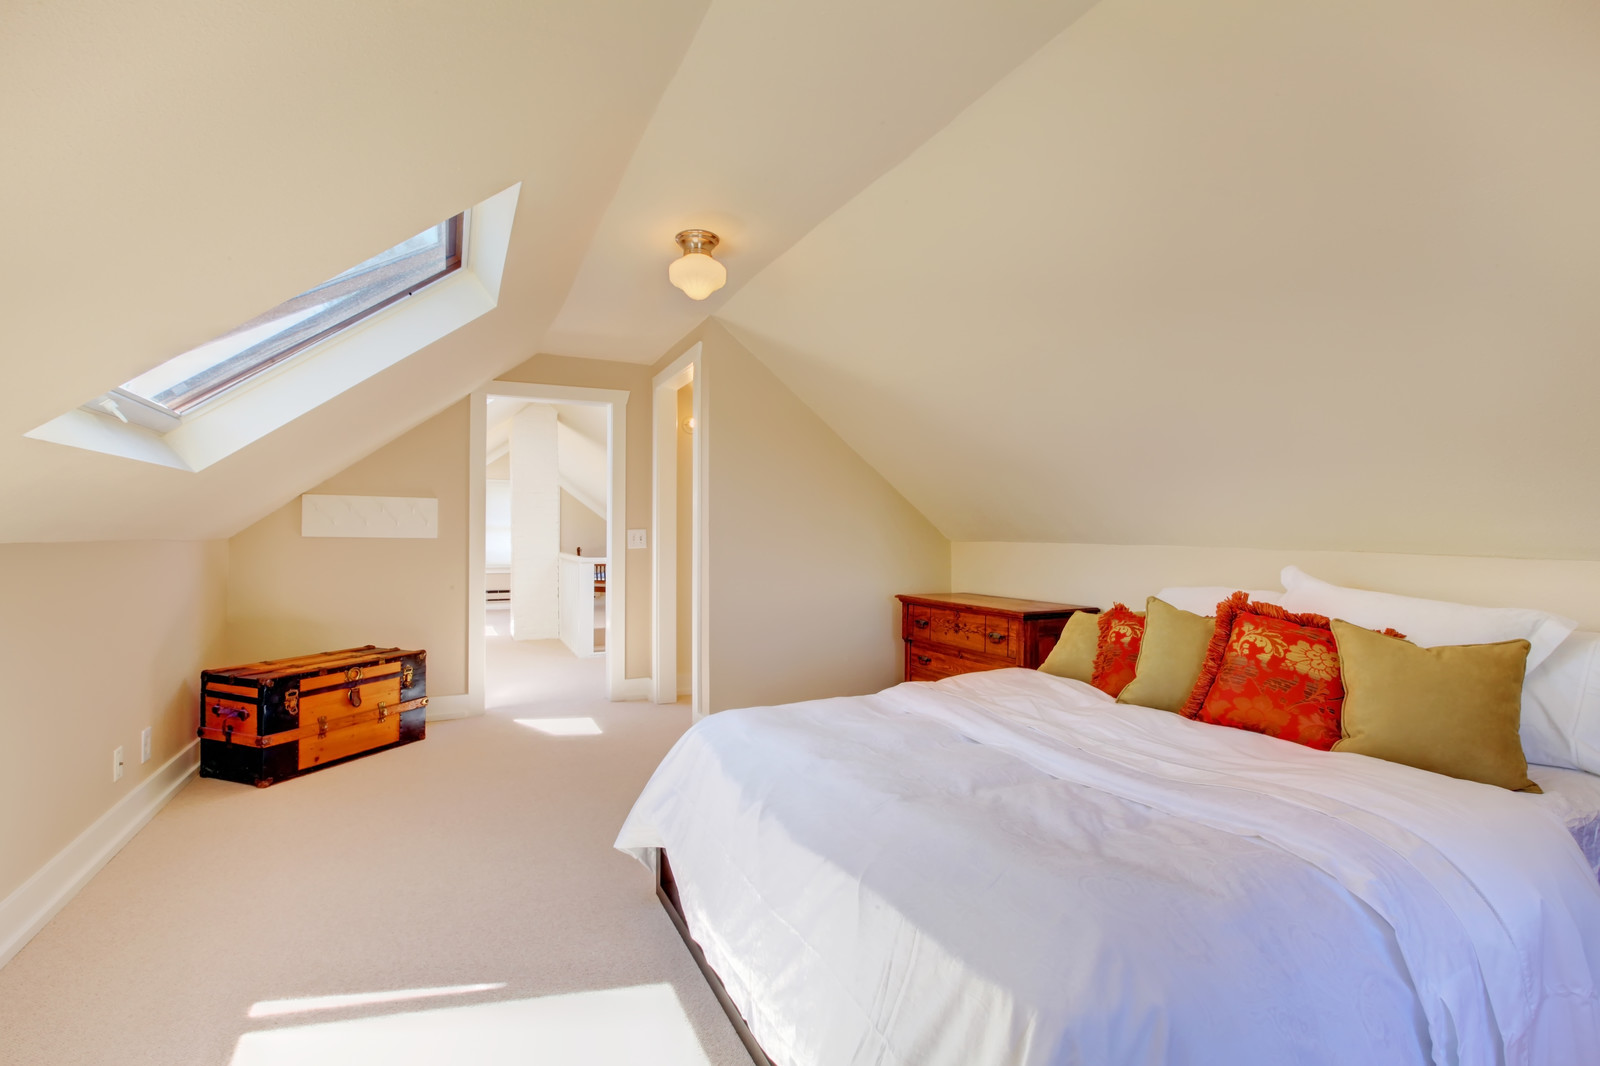 Bright Clean Dormer Loft Conversion Bedroom In The Decent Size Home With  Beige Carpet  Ace